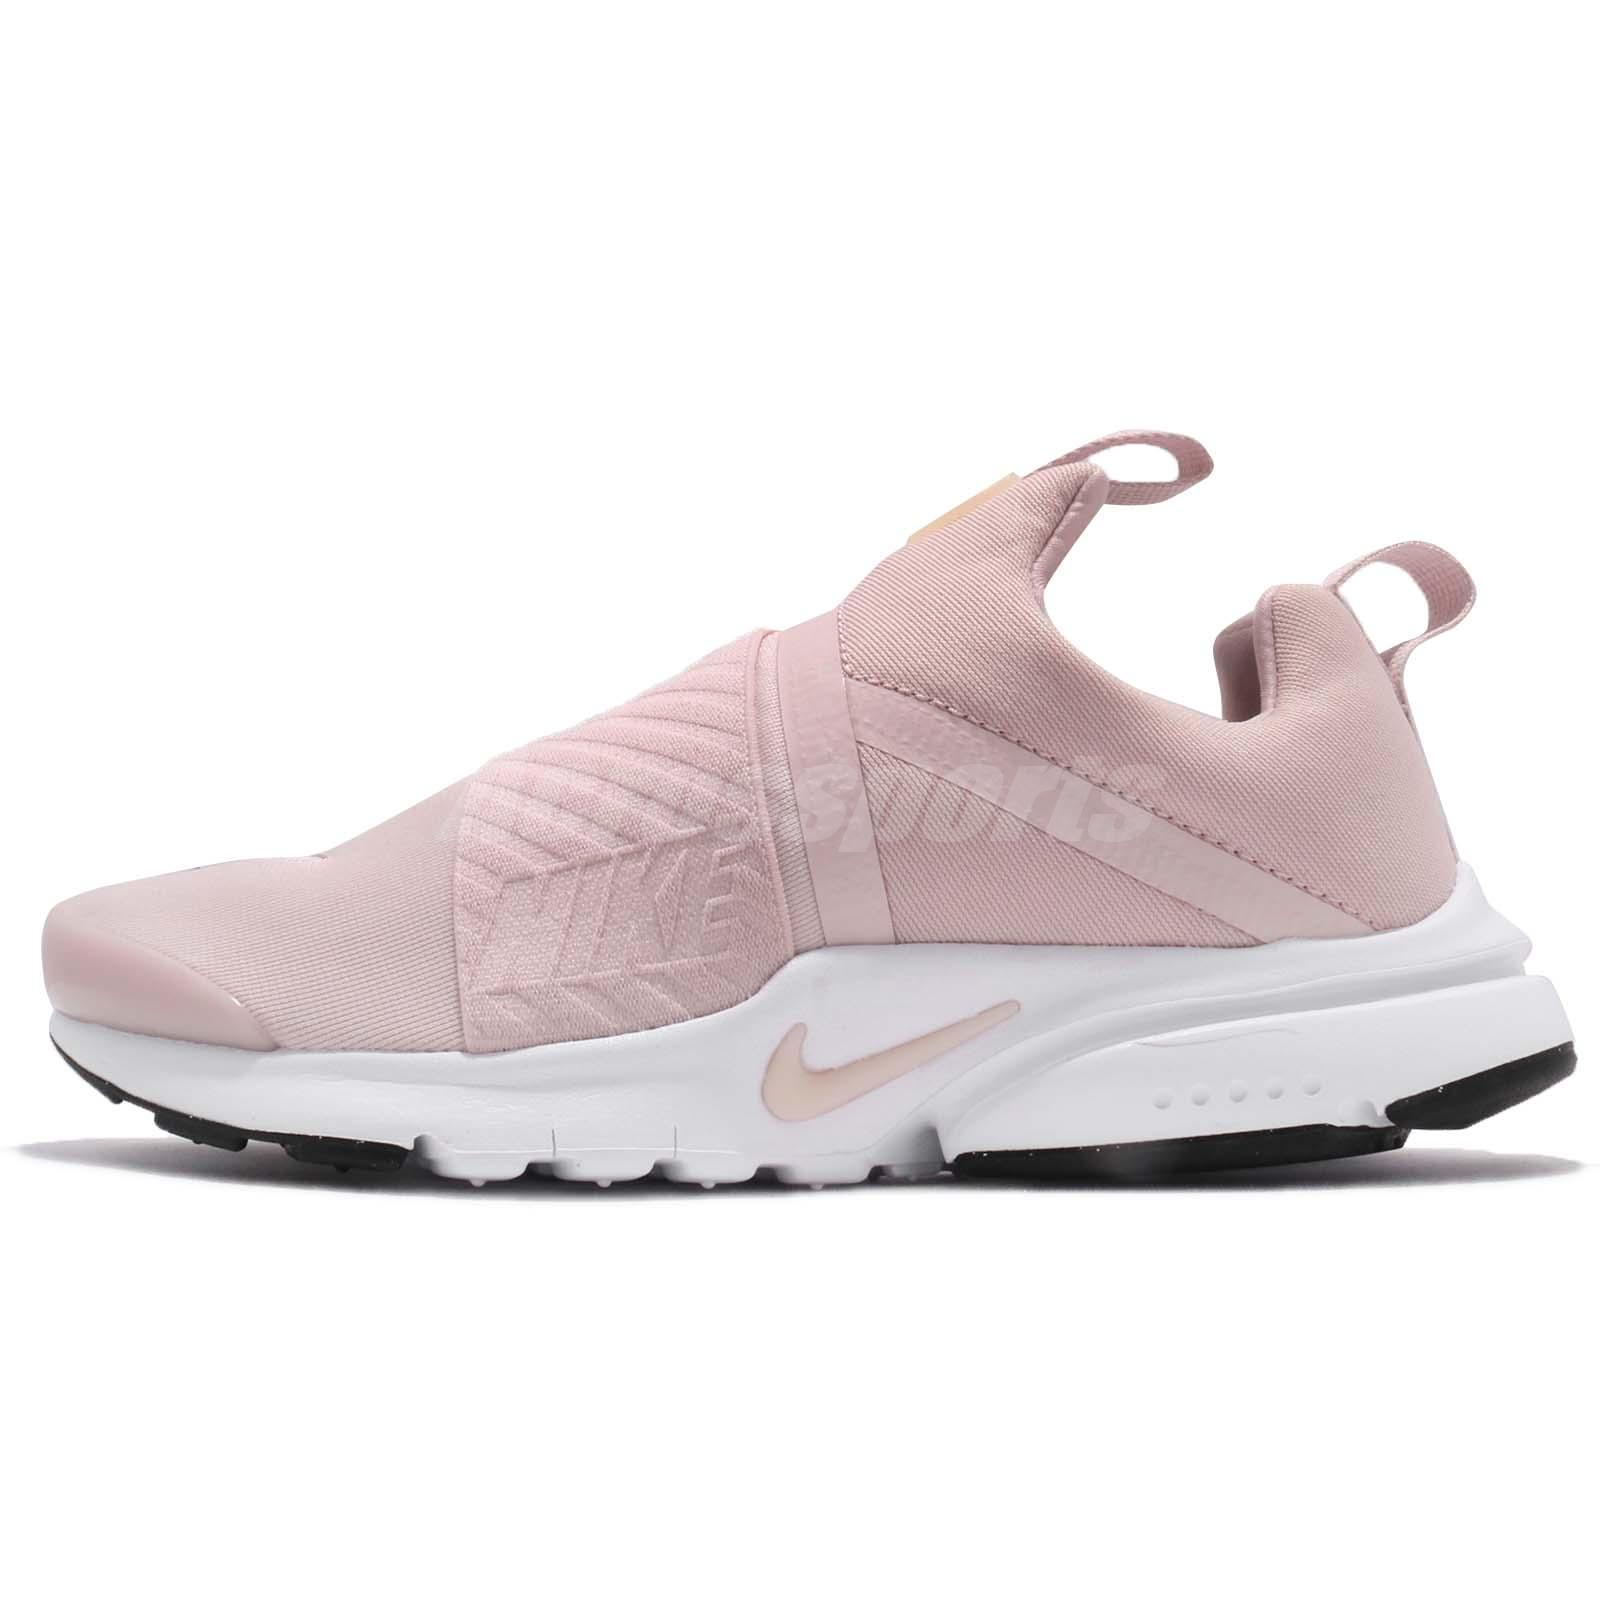 half off e0ece 1231a Nike Presto Extreme GS Barely Rose Pink White Kids Women Running Shoe  870022-601